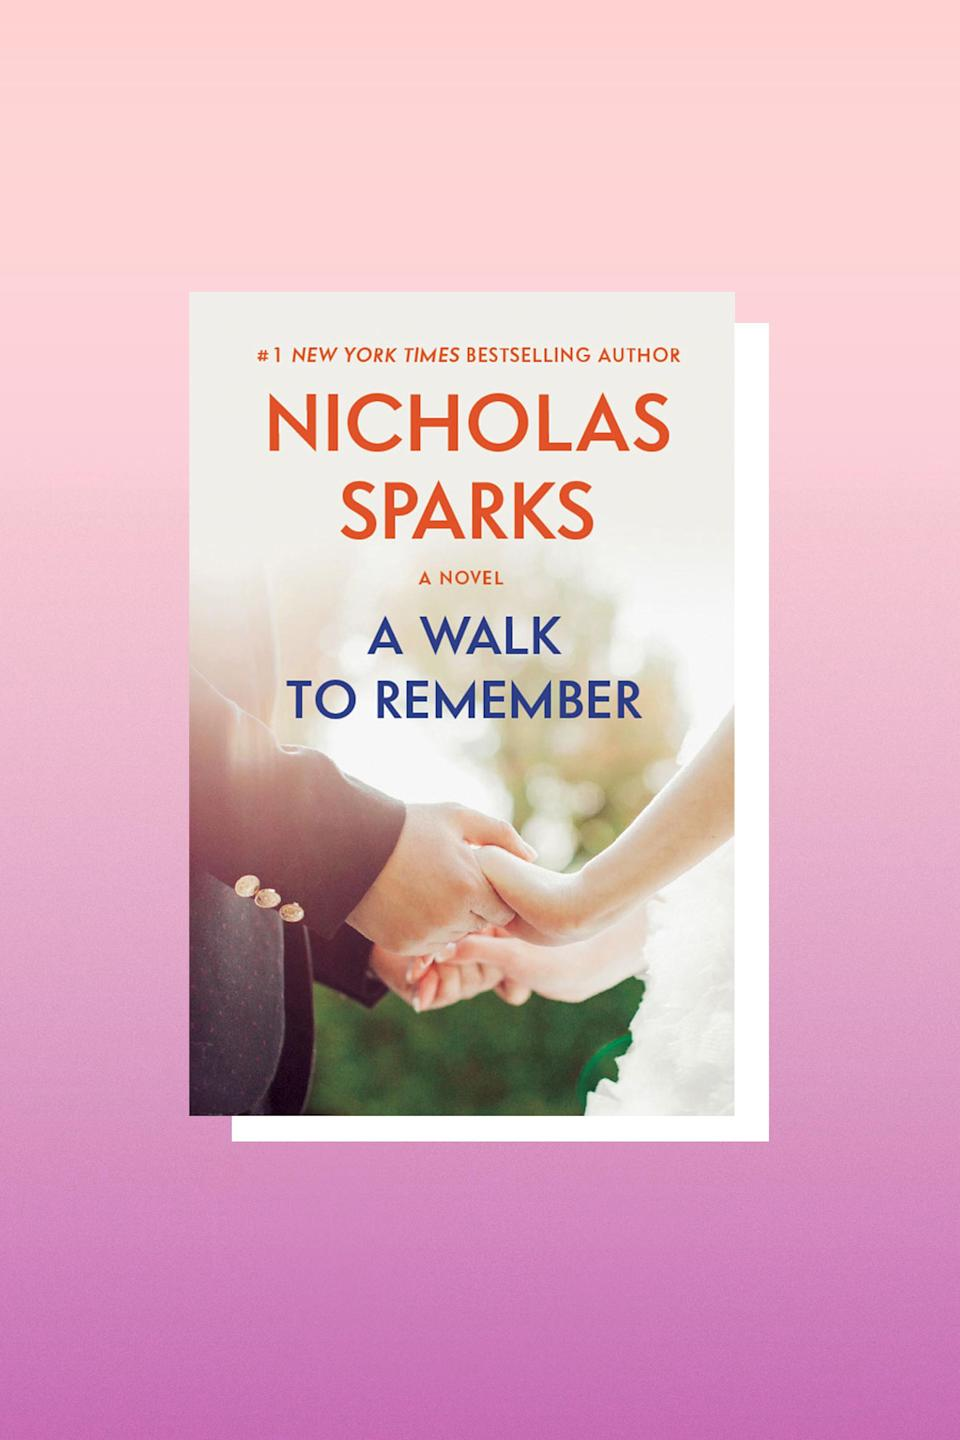 """You might roll your eyes at Nicholas Sparks, but sometimes you need a hokey, melodramatic love story to remind you that there's hope in the world. This one is heavy on the sap, and of course has an iconic film adaptation that's worth checking out as well.<br><br>""""There are moments when I wish I could roll back the clock and take all the sadness away, but I have the feeling that if I did, the joy would be gone as well."""" – <em>A Walk To Remember</em>"""